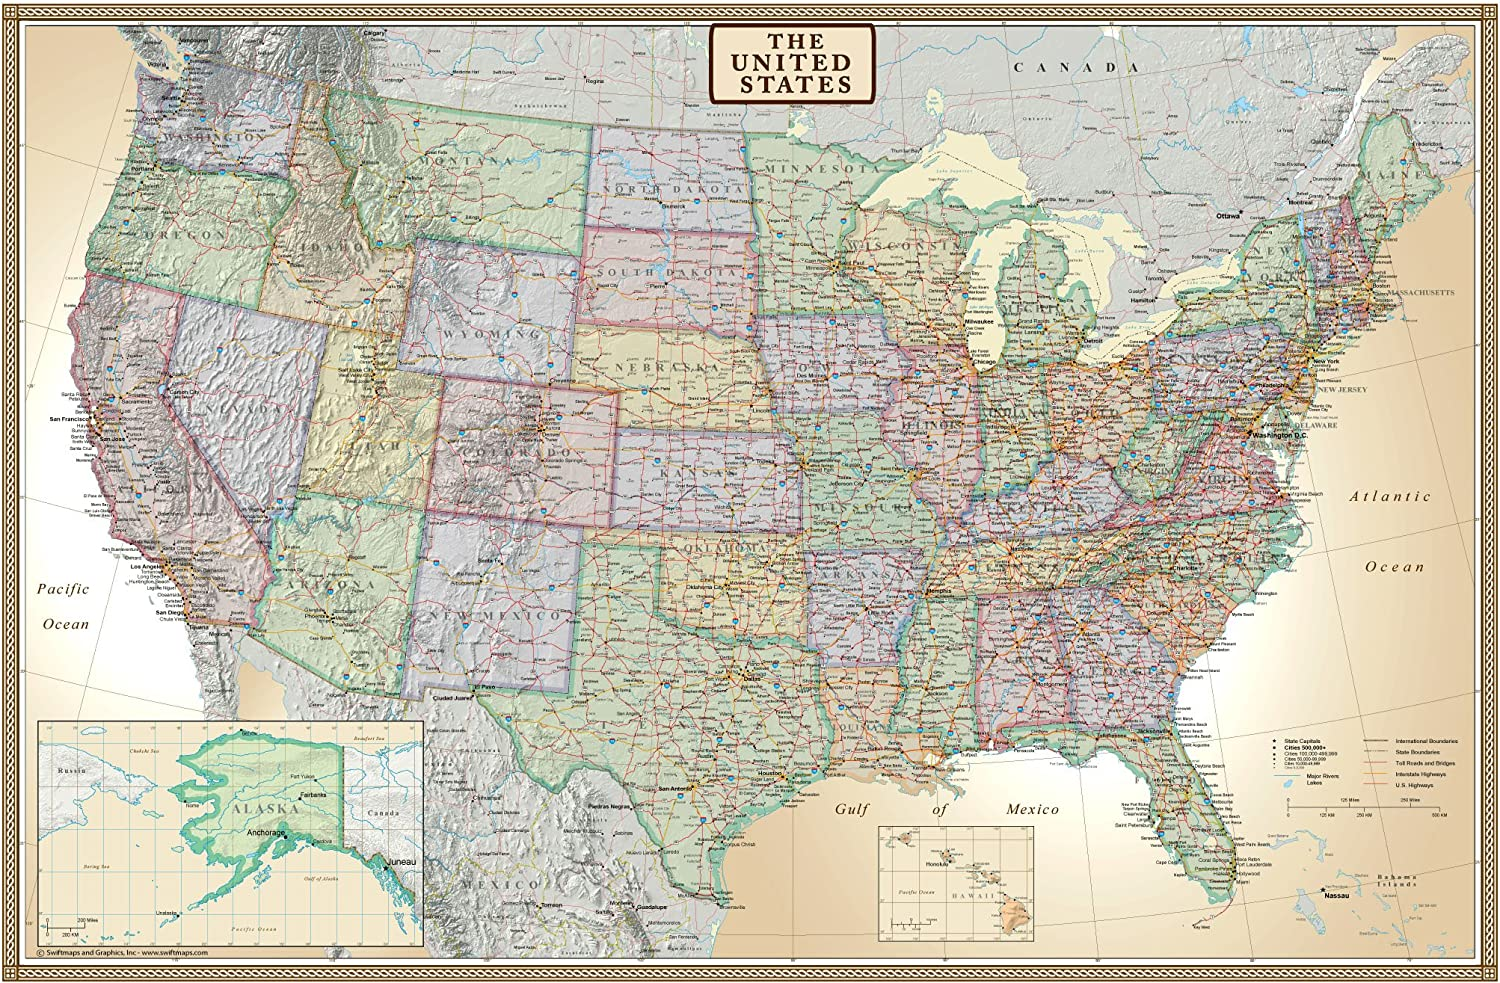 24x36 United States, USA US Executive Wall Map Poster Mural (24x36 Laminated)